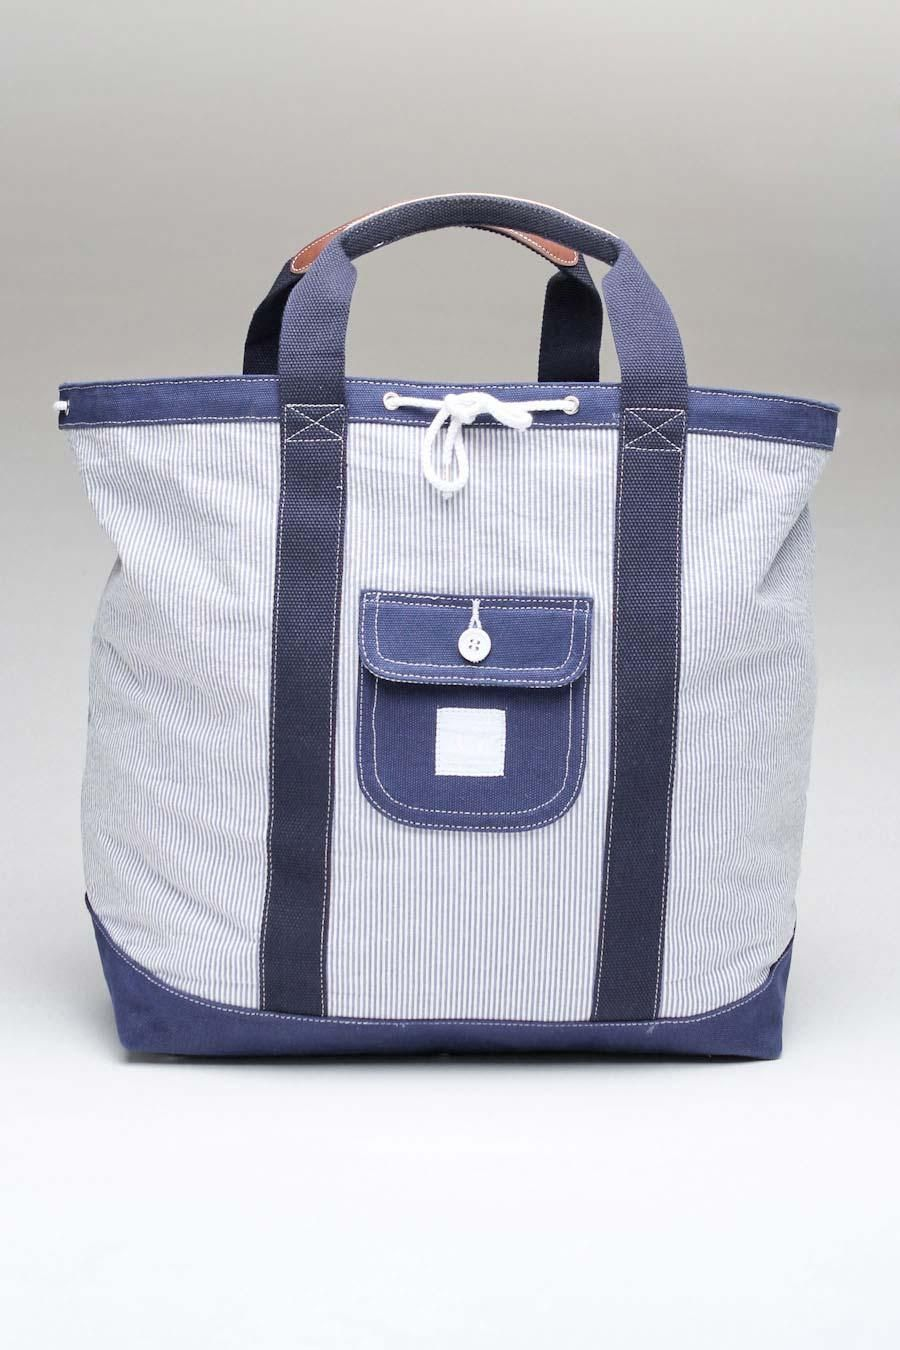 Goodale Summer Boat Tote - $50 - adorable!!